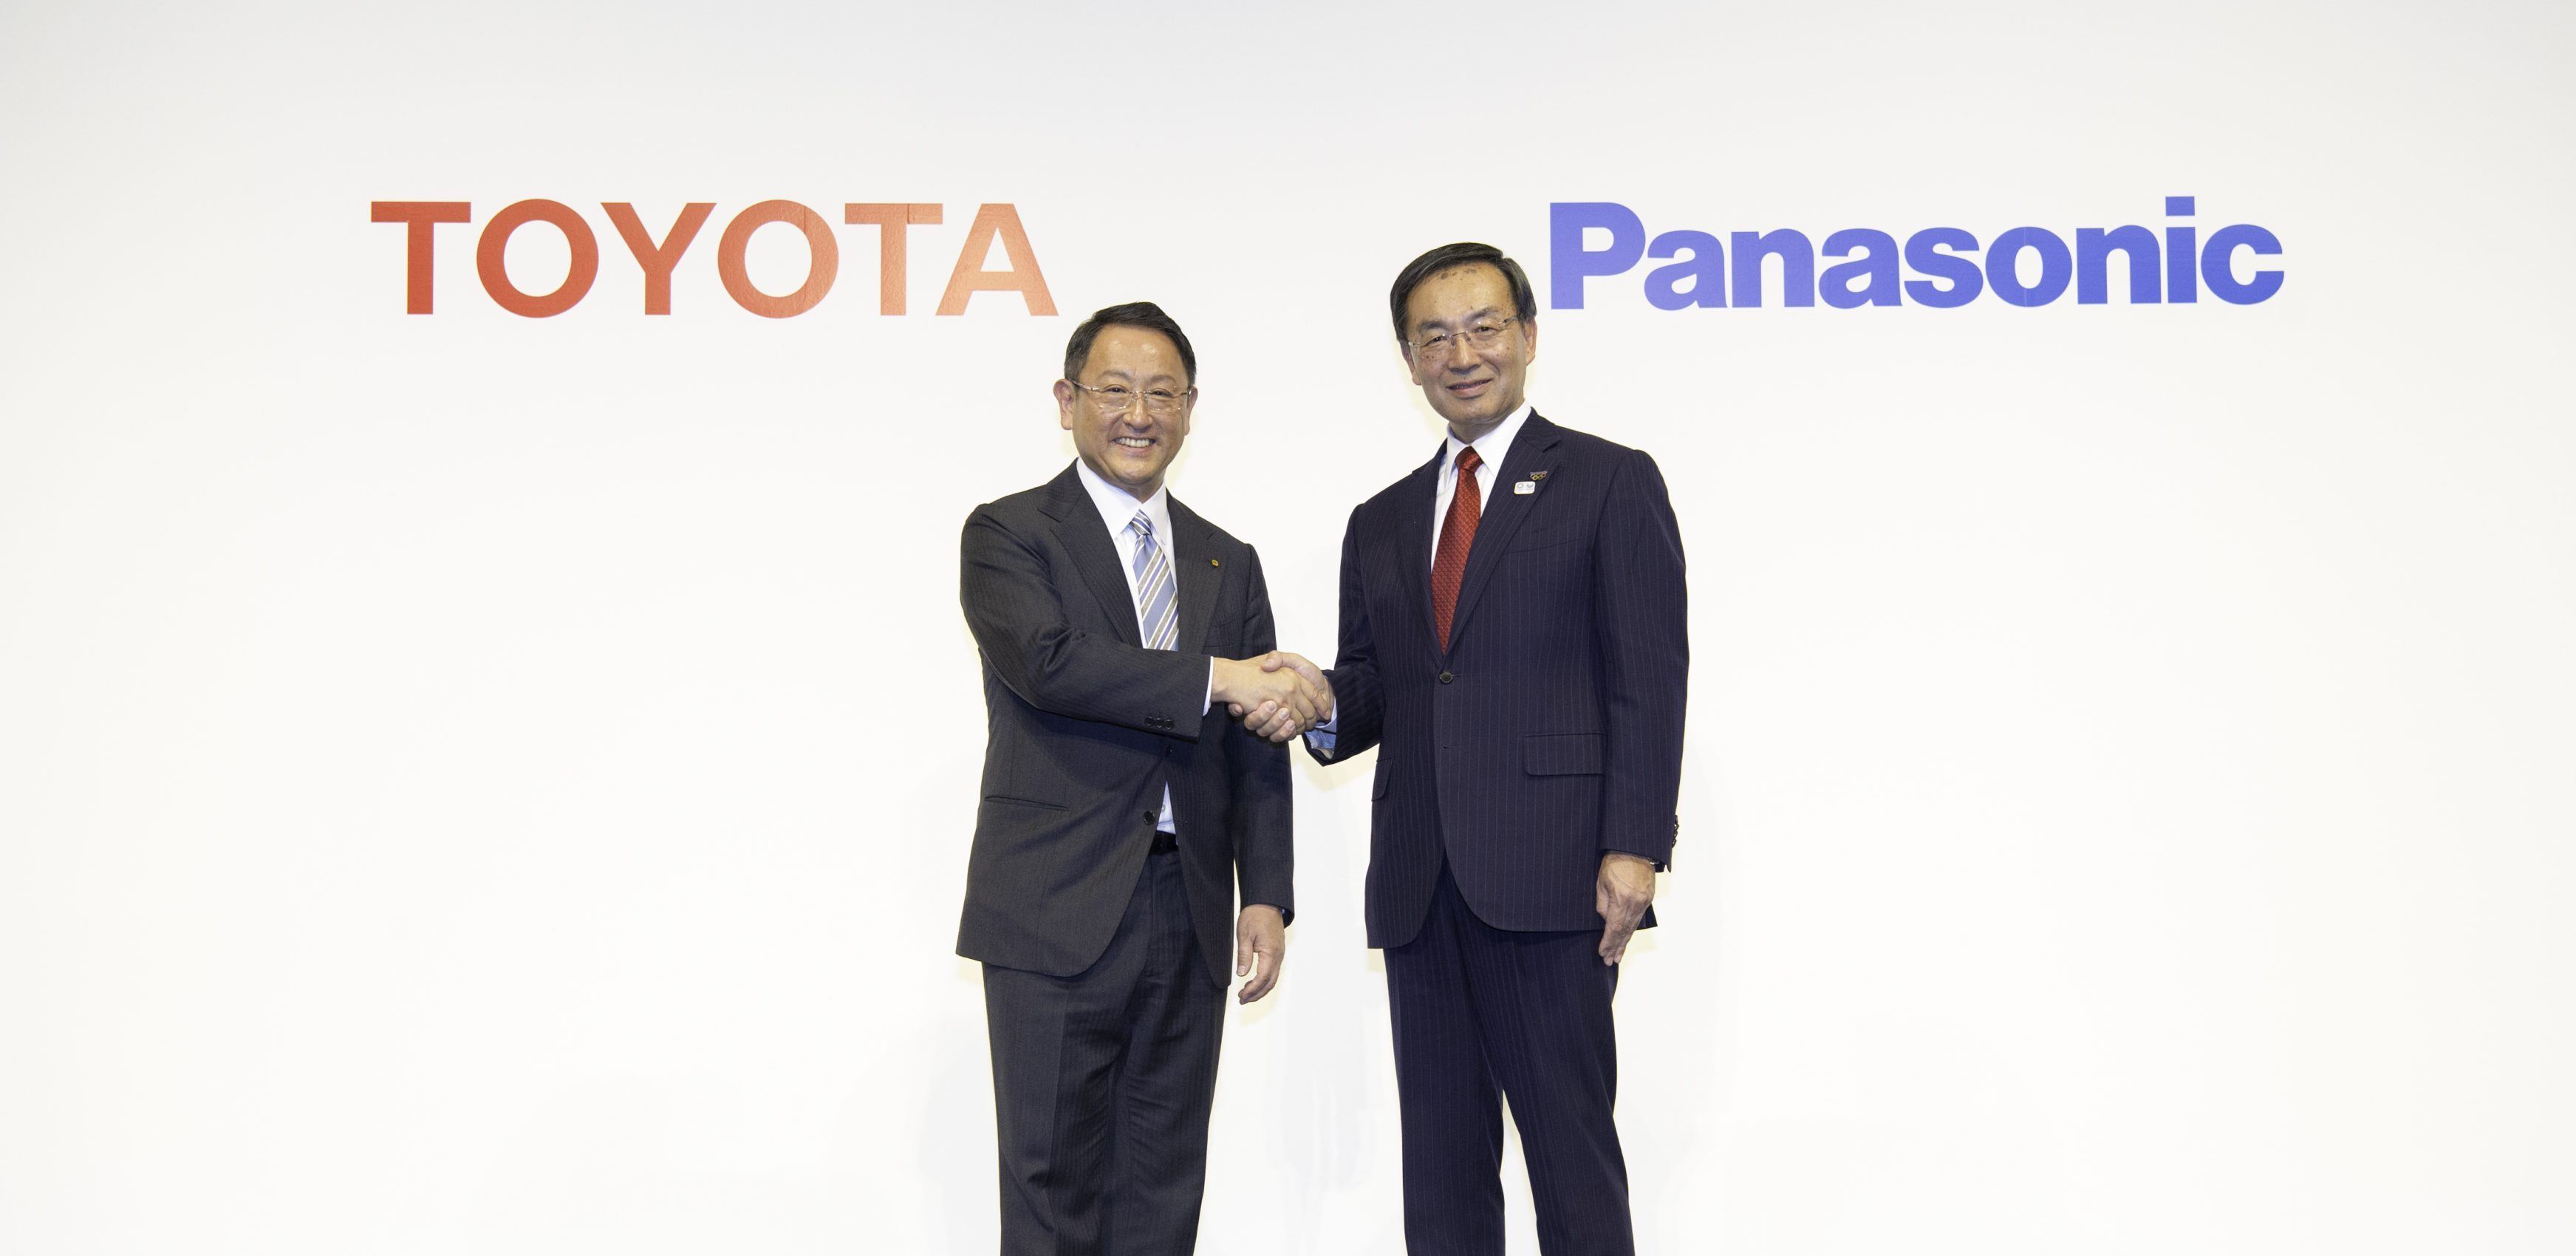 Toyota, Panasonic announce big EV battery joint venture